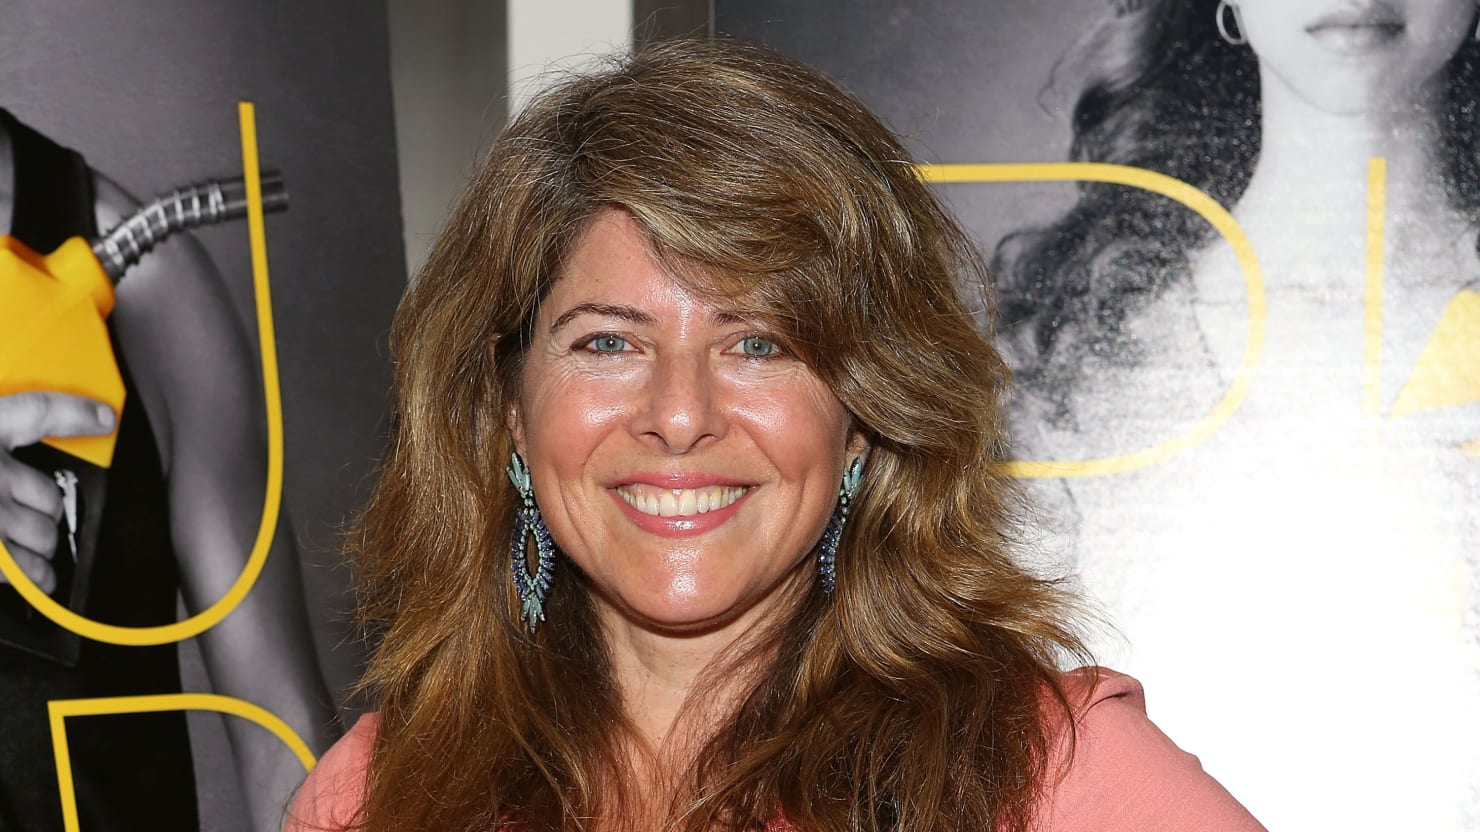 thedailybeast.com - Maxwell Tani - Naomi Wolf's Publisher 'Discussing Corrections' After Disastrous Radio Interview